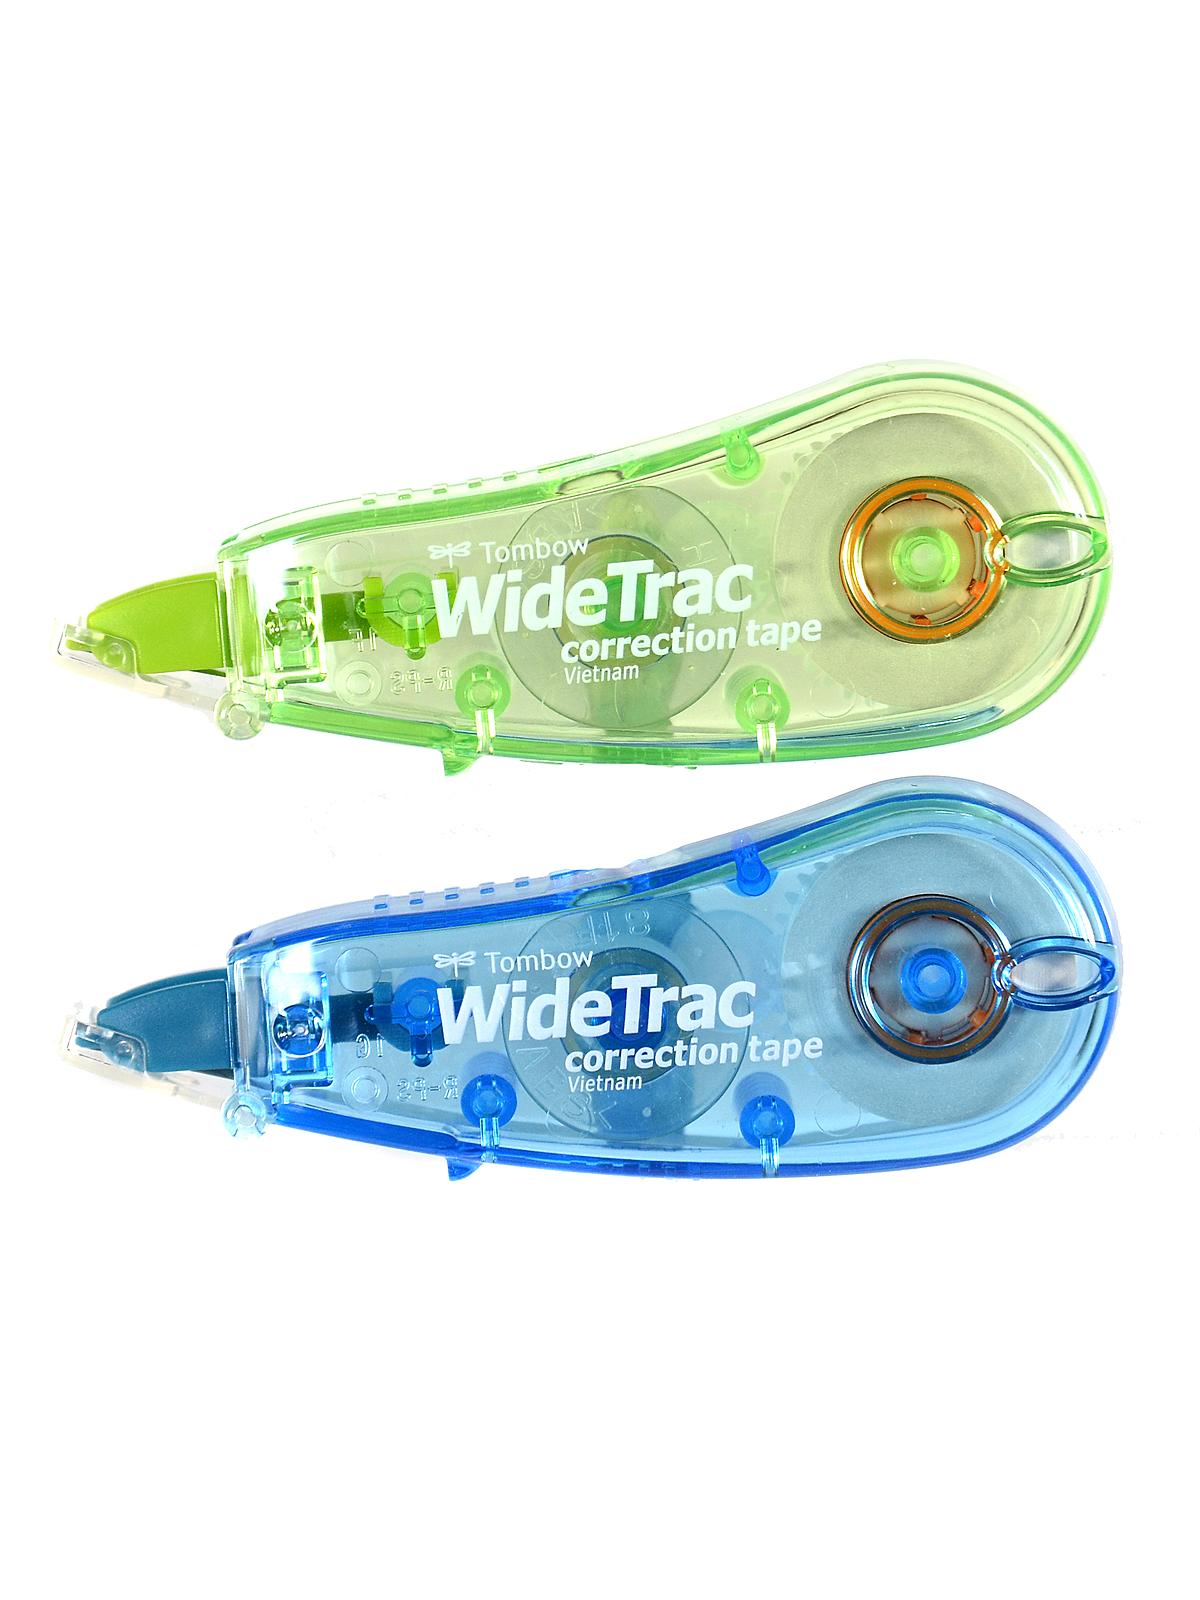 WideTrac Correction Tape